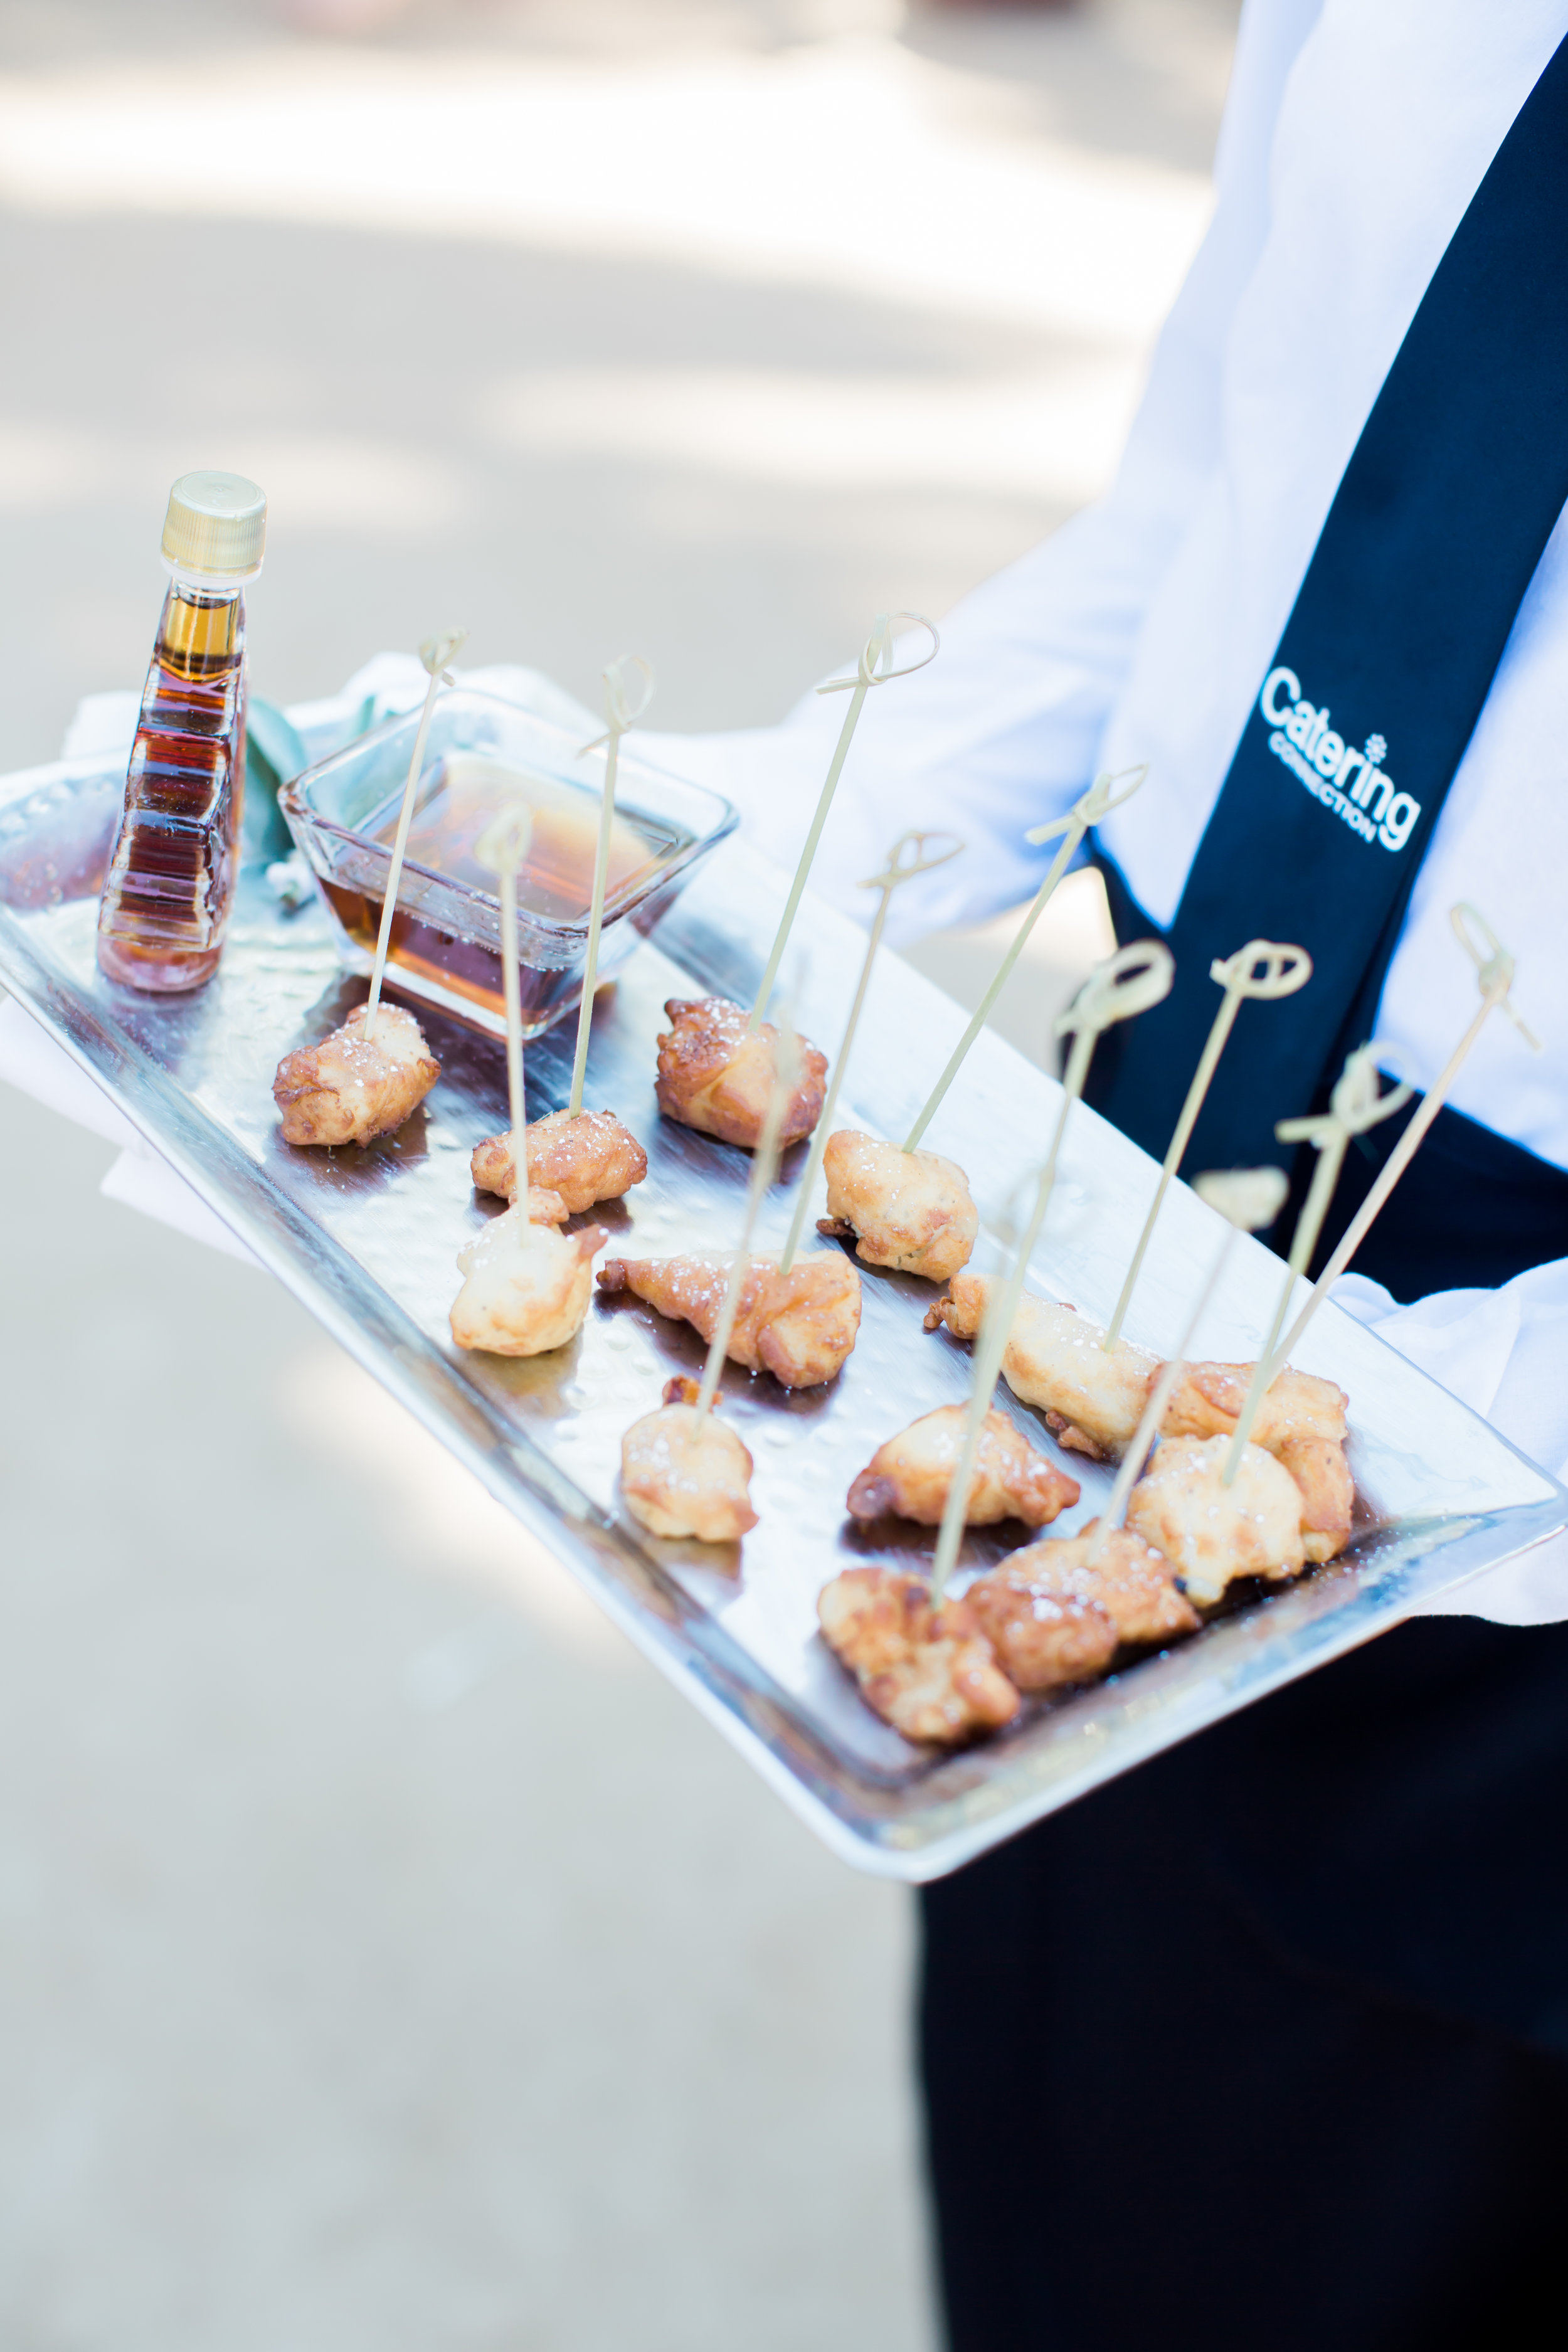 www.santabarbarawedding.com | James and Jess Photography | Santa Barbara Historical | Amazing Day Events | Catering Connection | Hors D'hoeuvres with Syrup